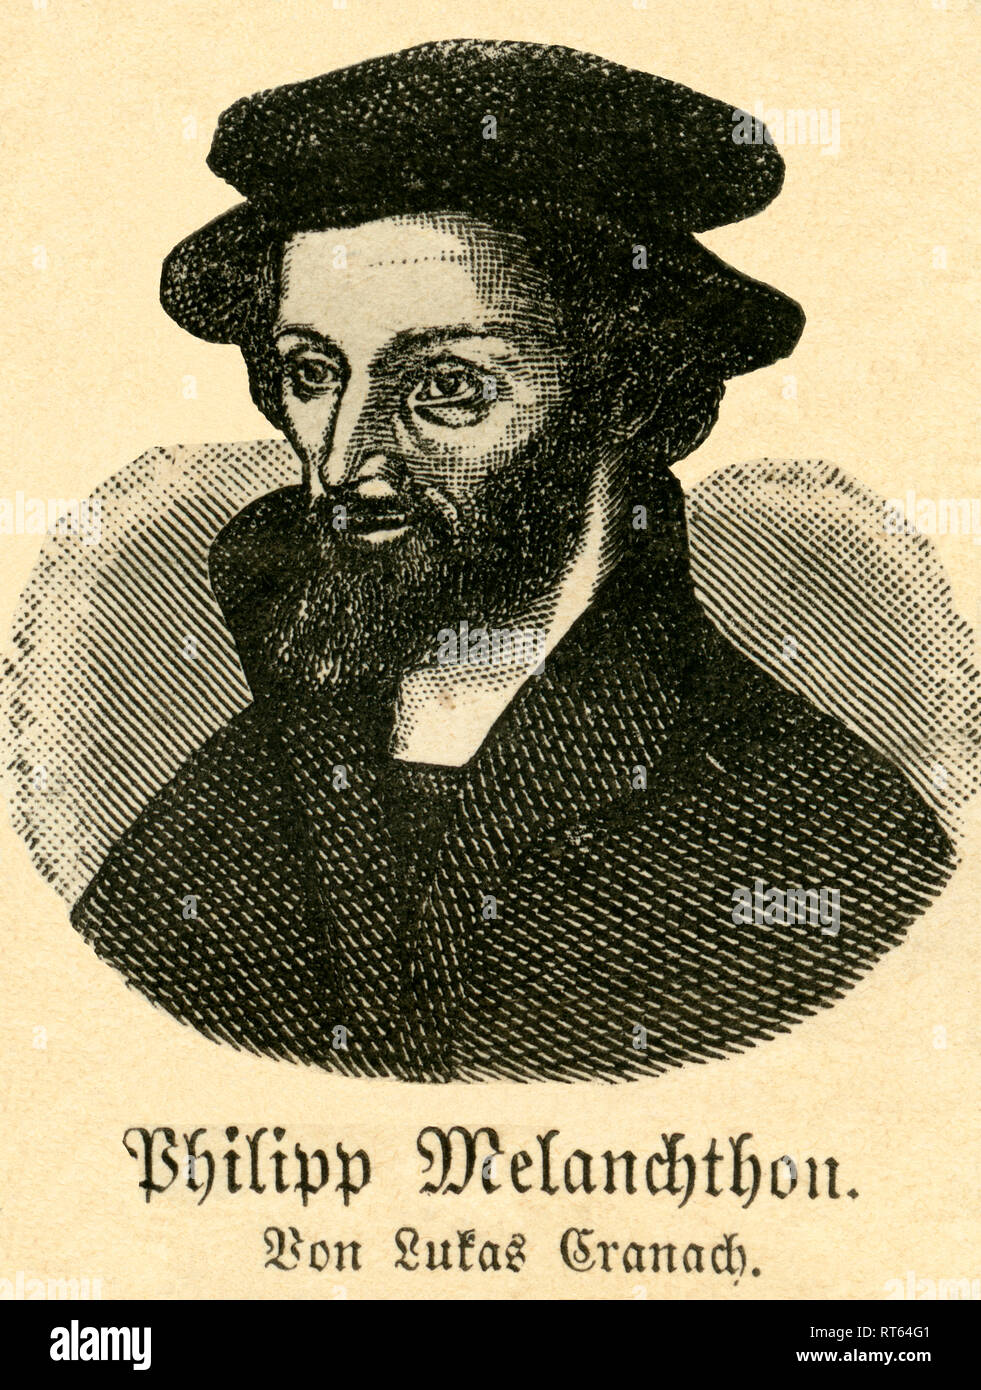 Philipp Melanchthon, German Lutheran Reformer, illustration from: 'Die Welt in Bildern ' (images of the world), published by Dr. Chr. G. Hottinger in self-publishing, Berlin / Strasbourg, 1881., Additional-Rights-Clearance-Info-Not-Available - Stock Image